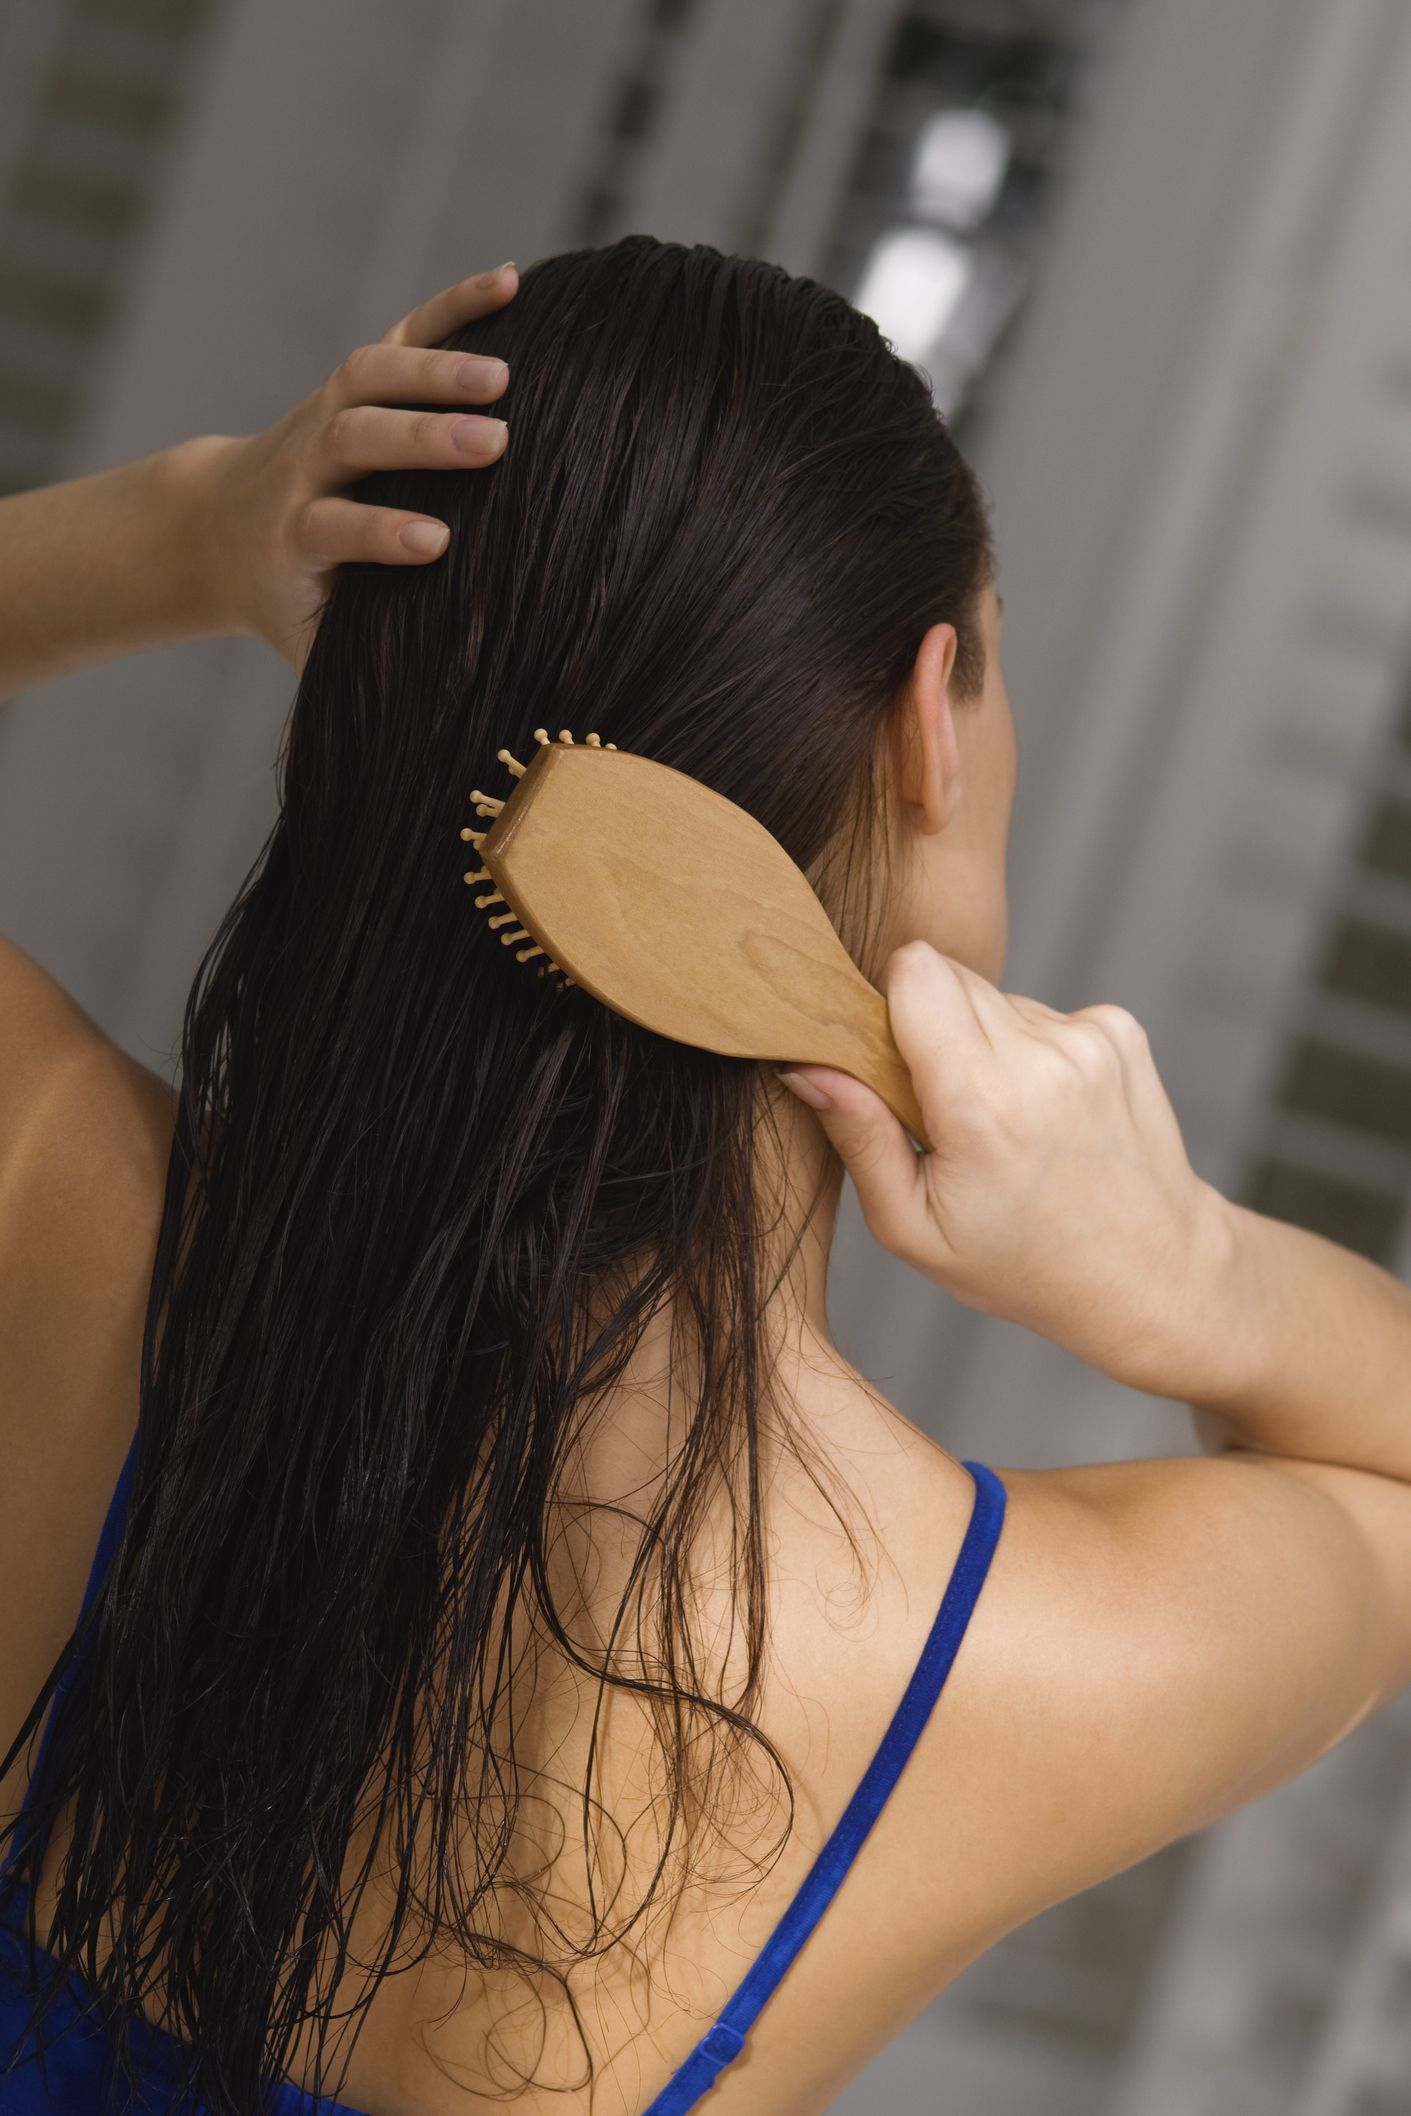 anemia can cause hair loss in women